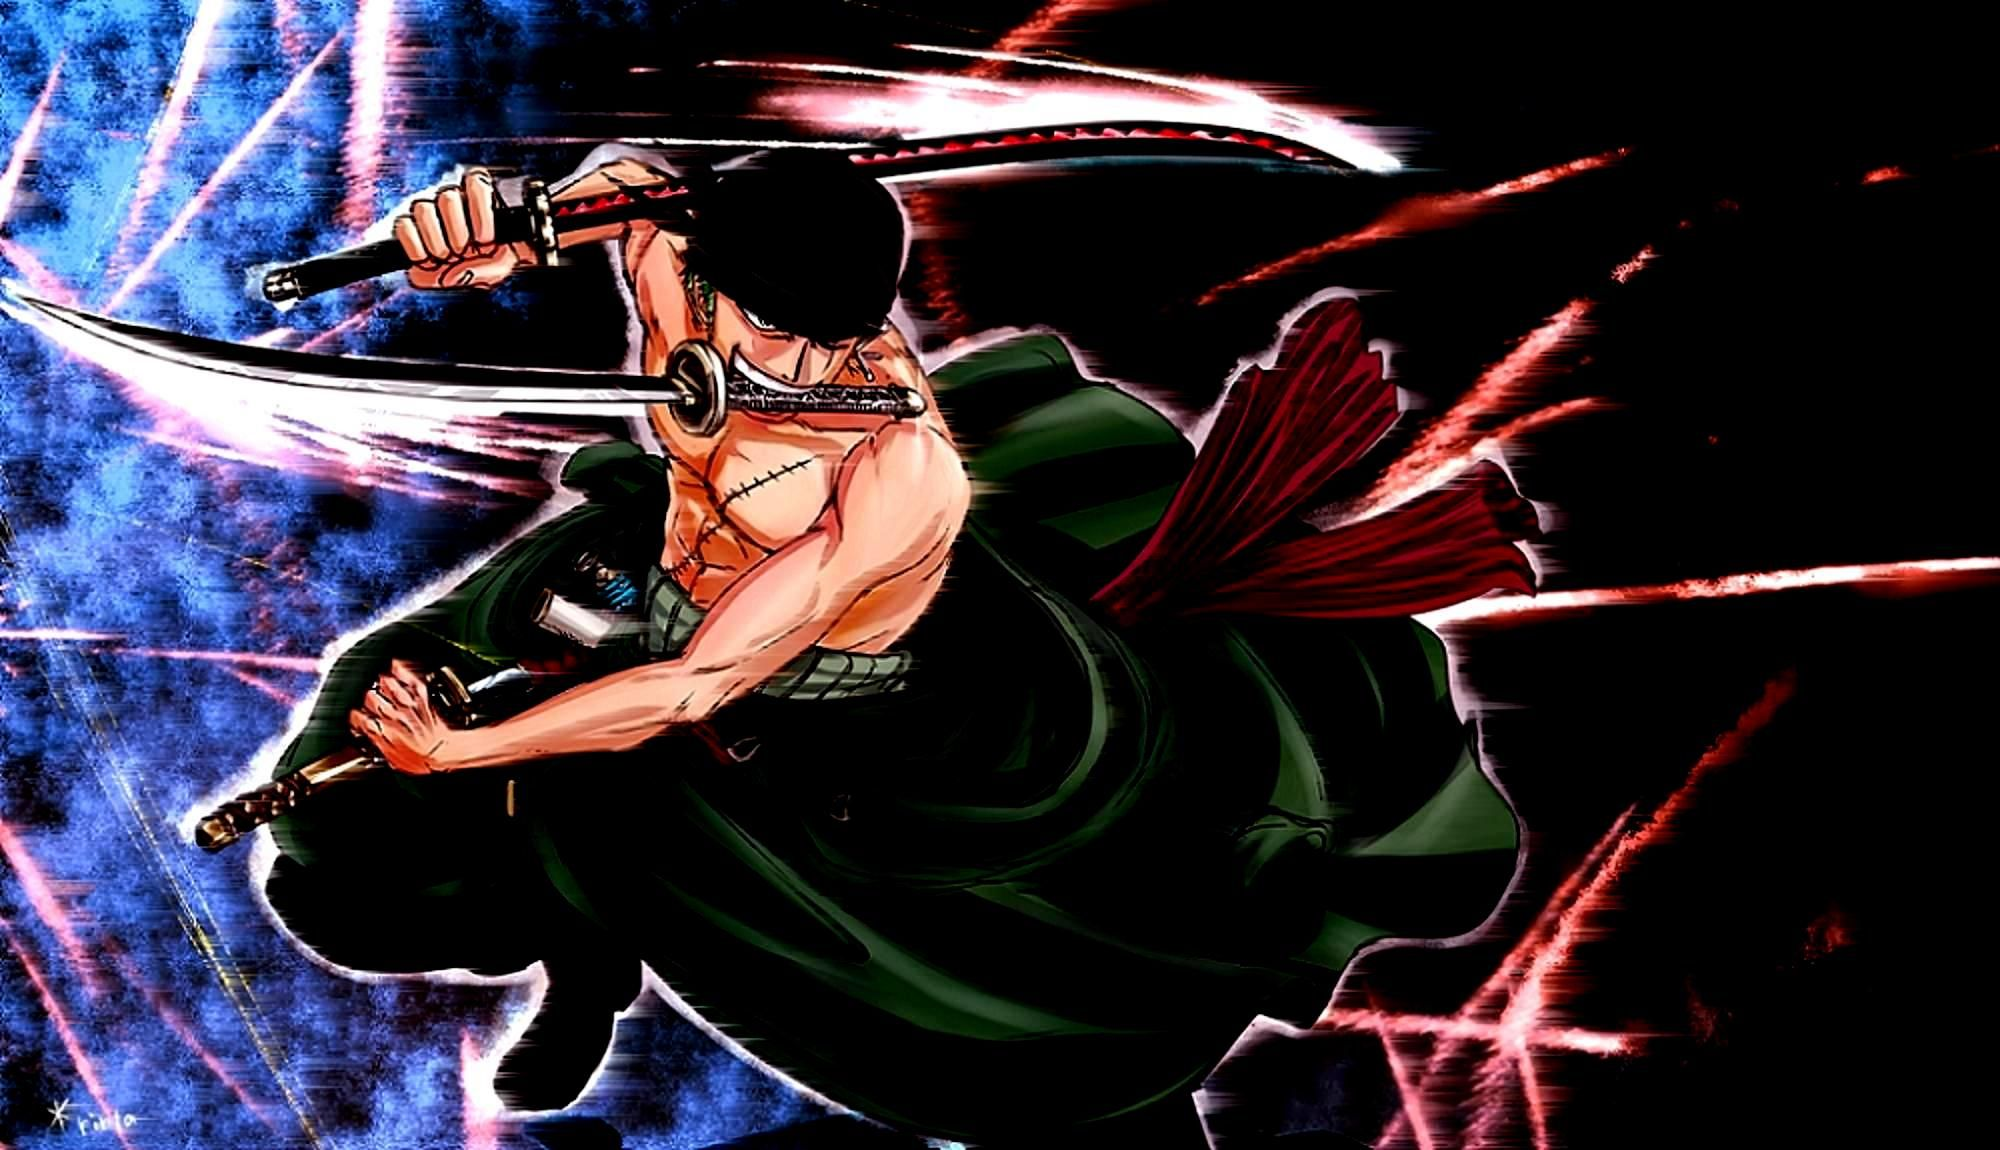 Roronoa Zoro Wallpaper Hd Top High Definition Wallpapers Backgrounds